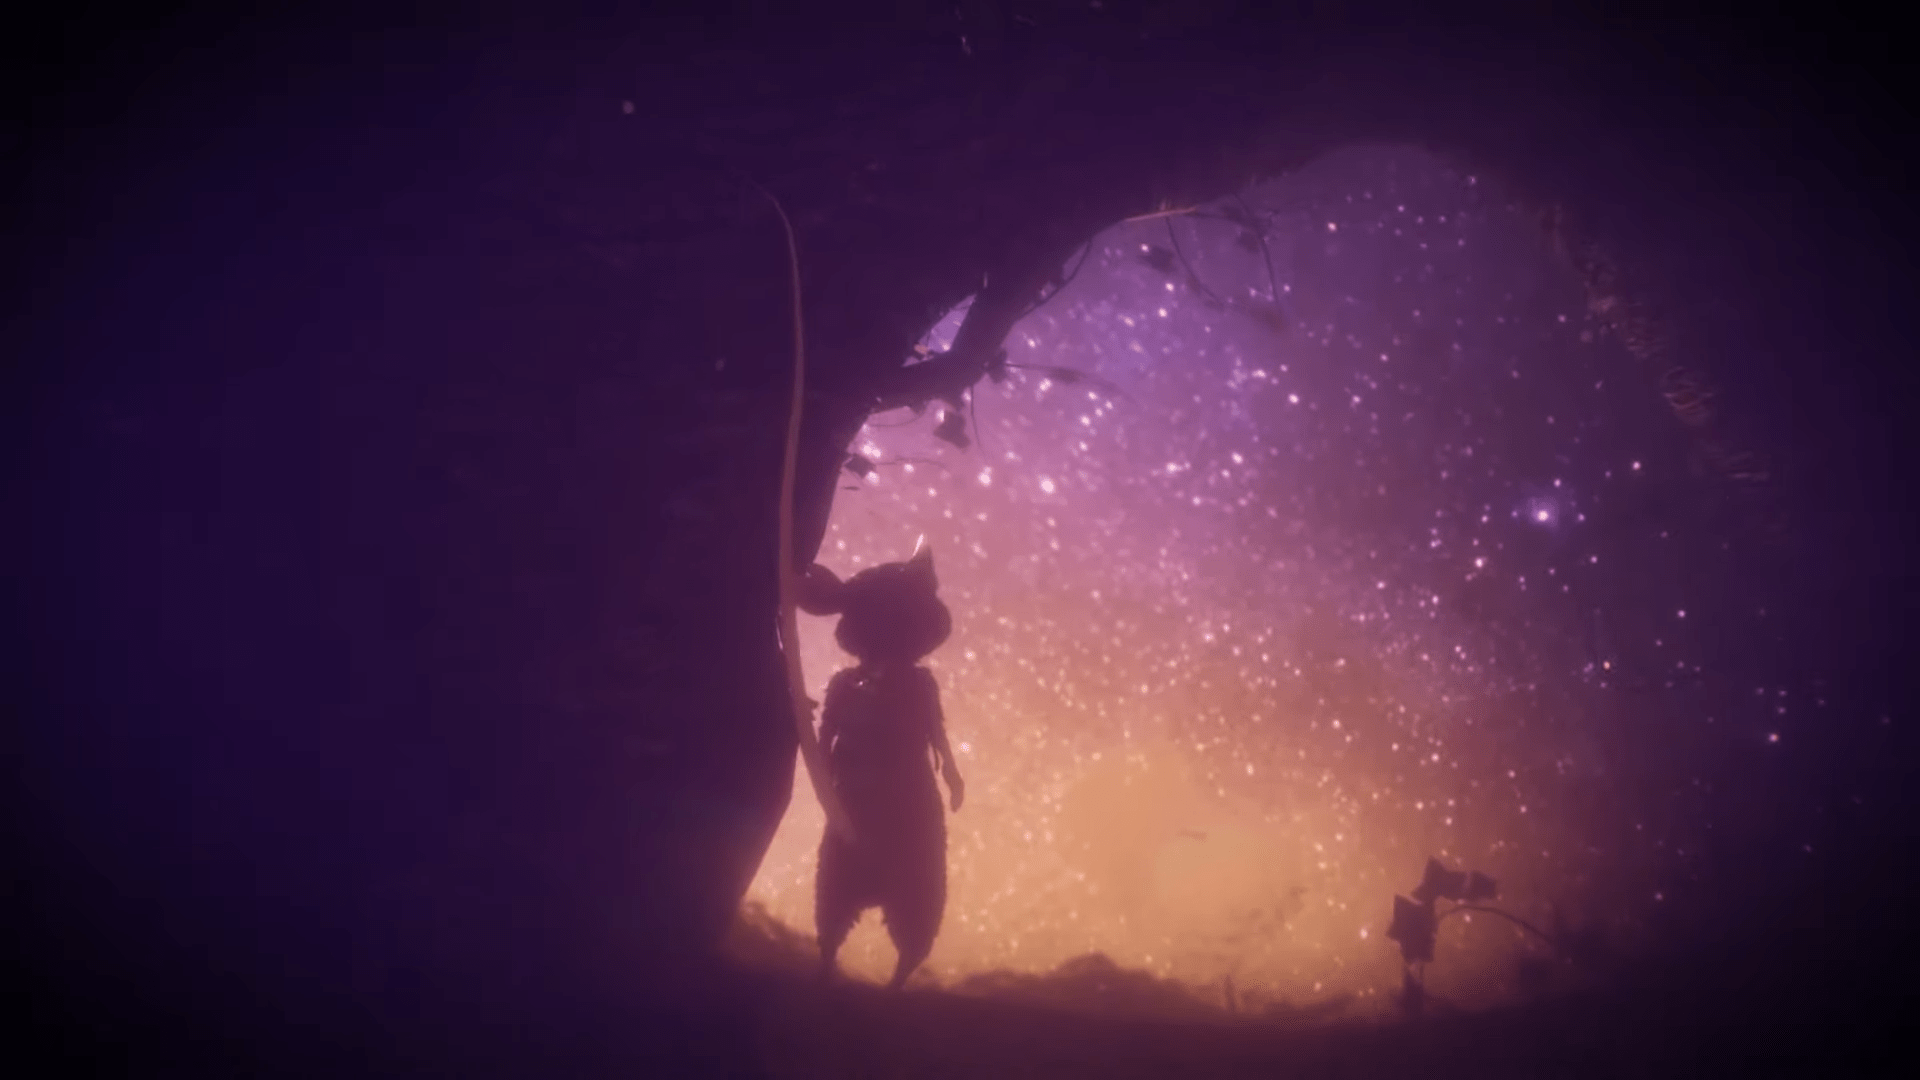 Explore A Giant World And Rescue Your Captured Love In A Rat's Quest The Way Back Home